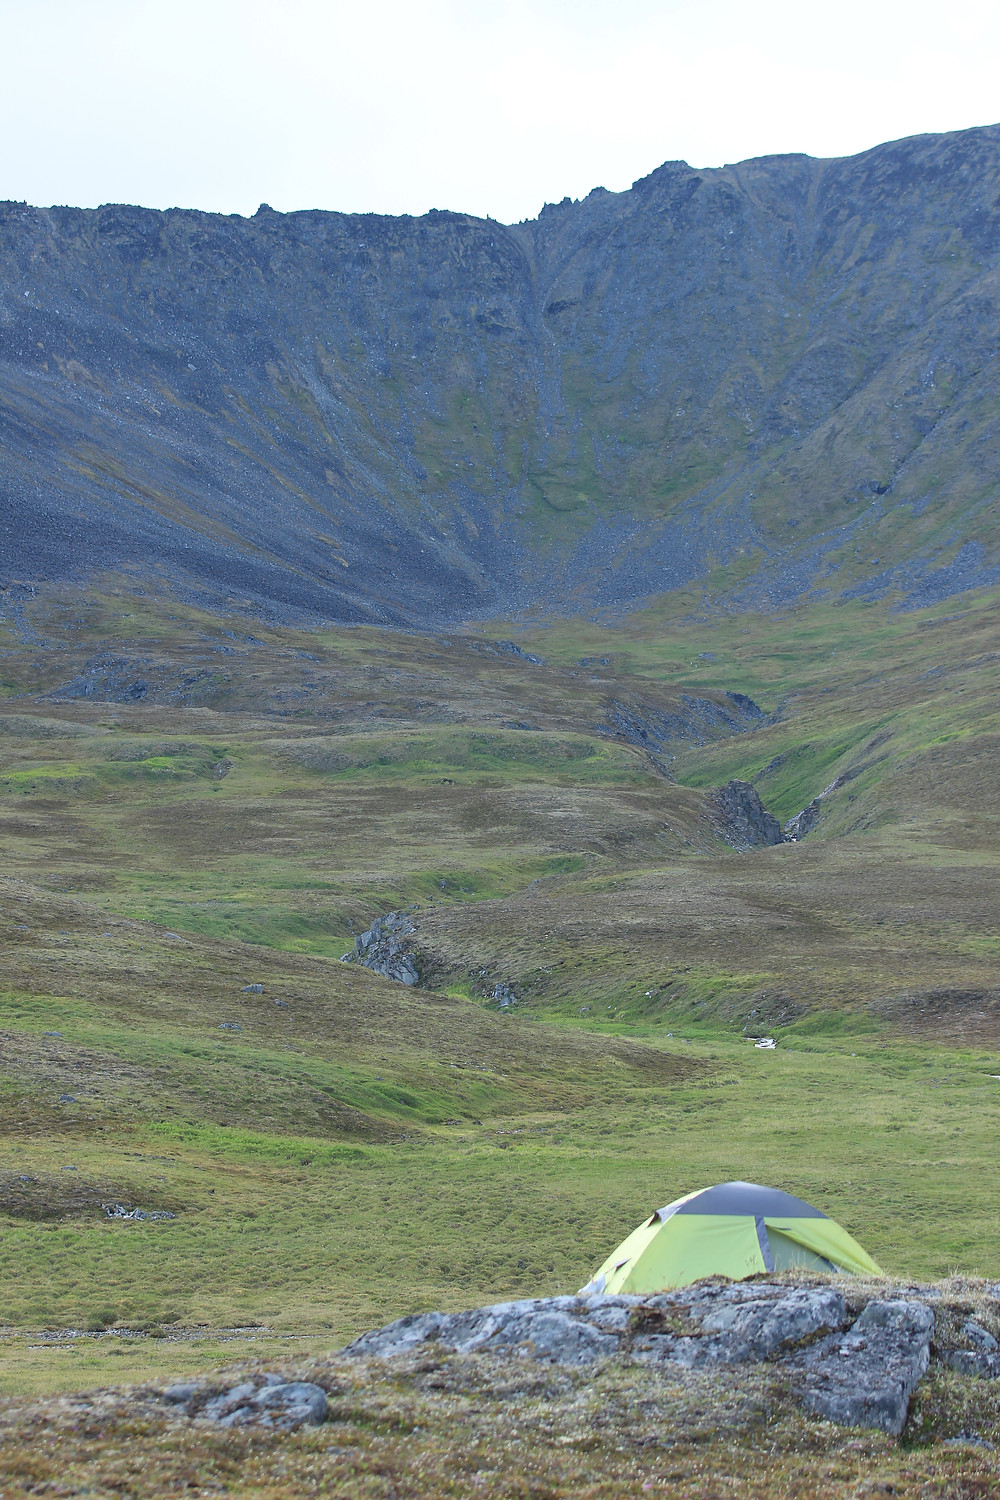 View from camp of Razor Back Ridge where we saw the first caribou